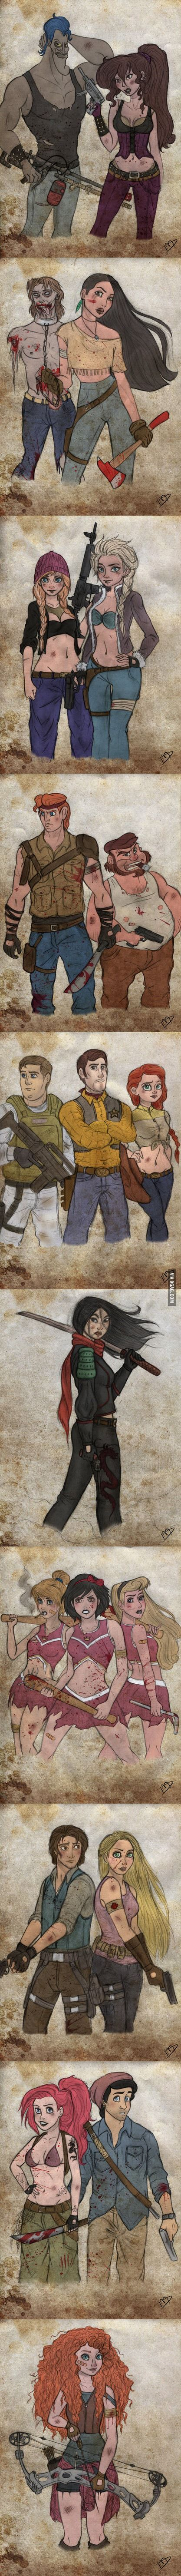 The Walking Disney Dead... Oh my God I love this! I don't know where to re-pin it!